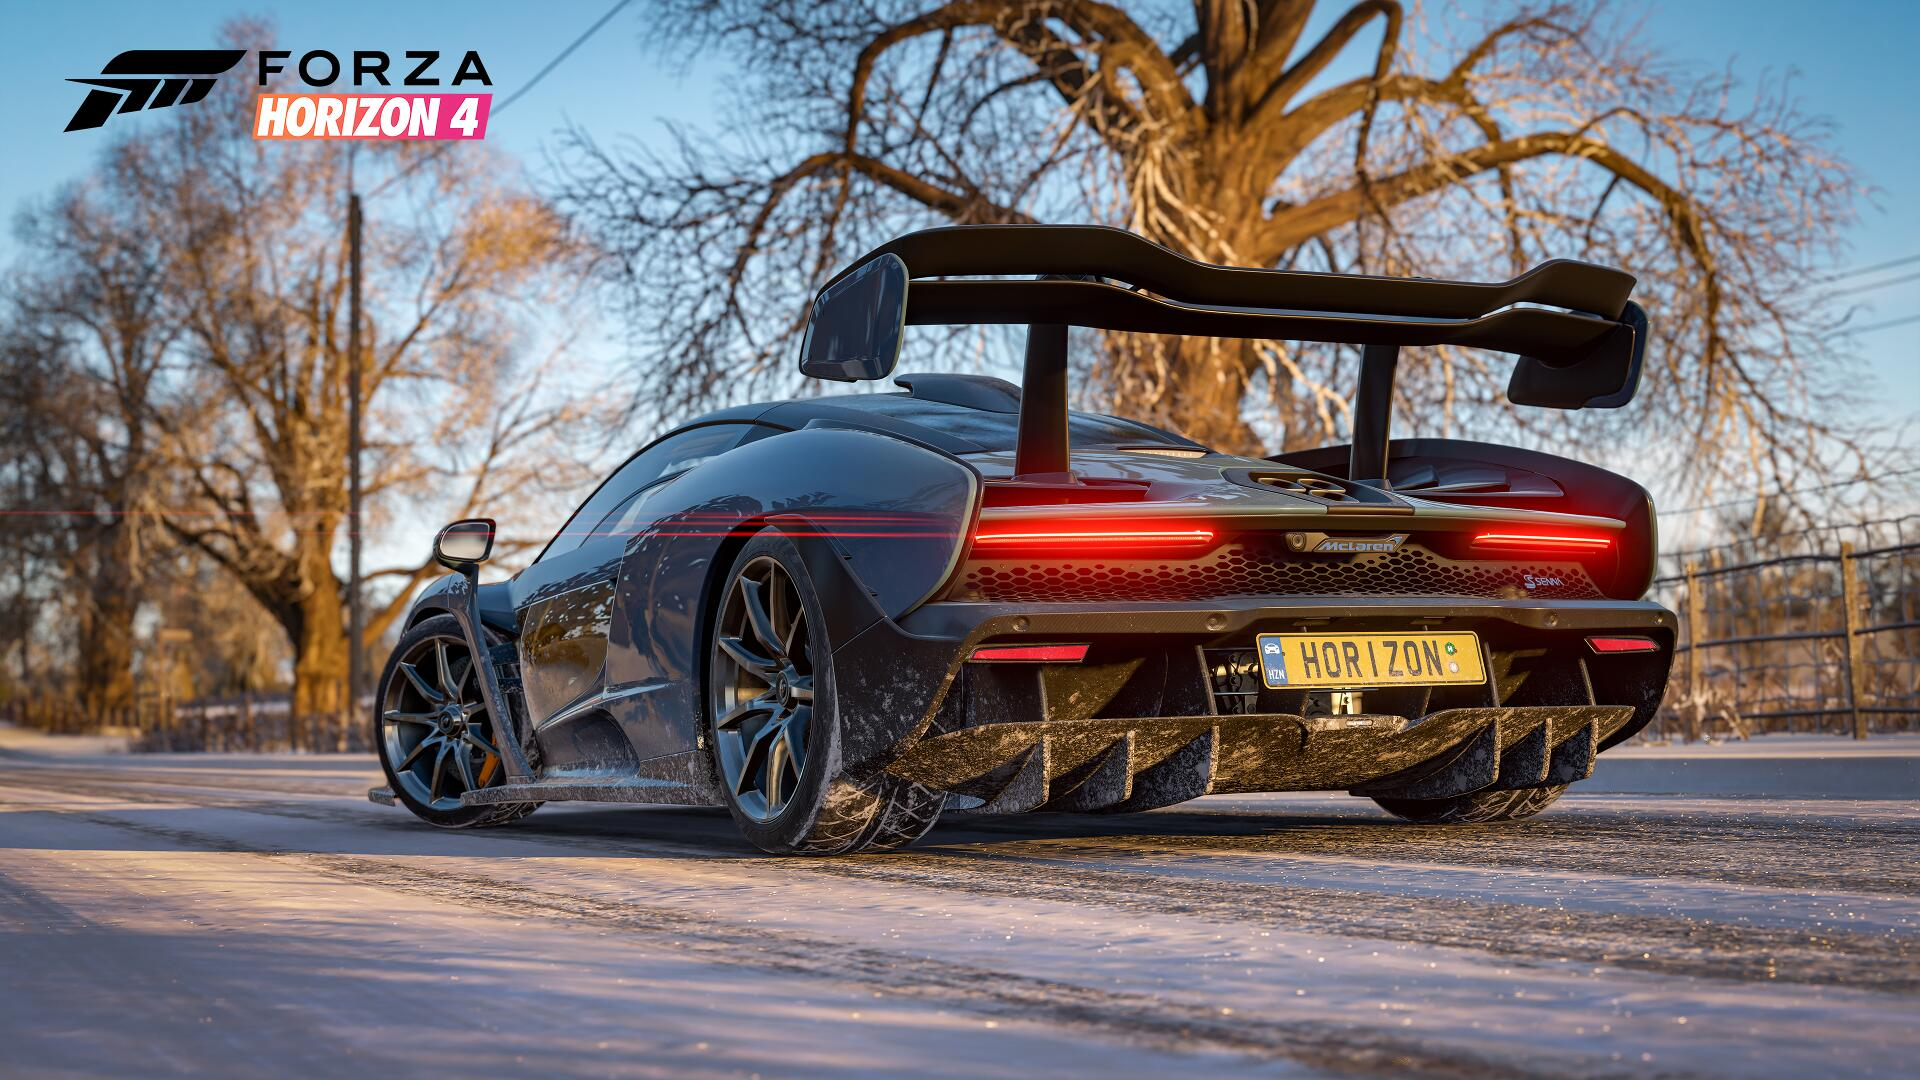 Having issues with Forza Horizon 4 Not Loading Win 10 | PC